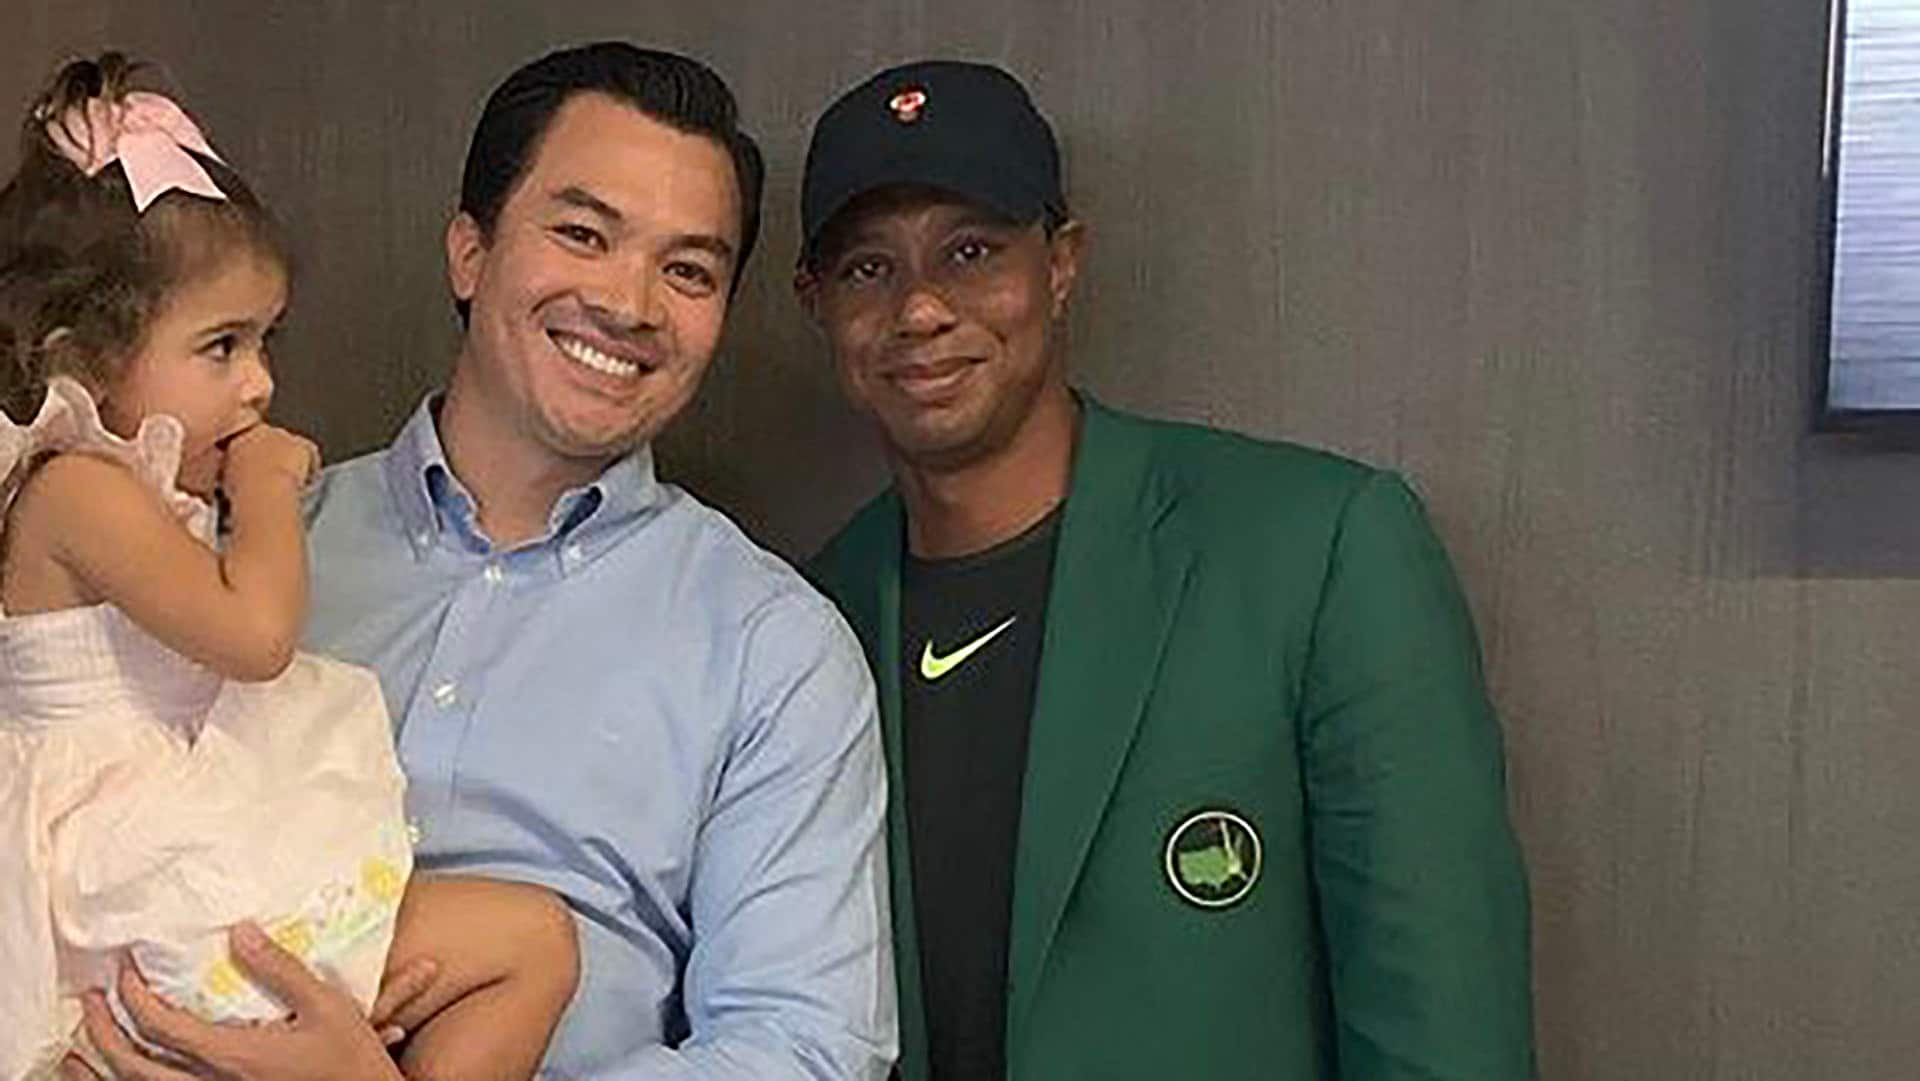 Tiger Woods Wears Green Jacket To Dinner At His Own